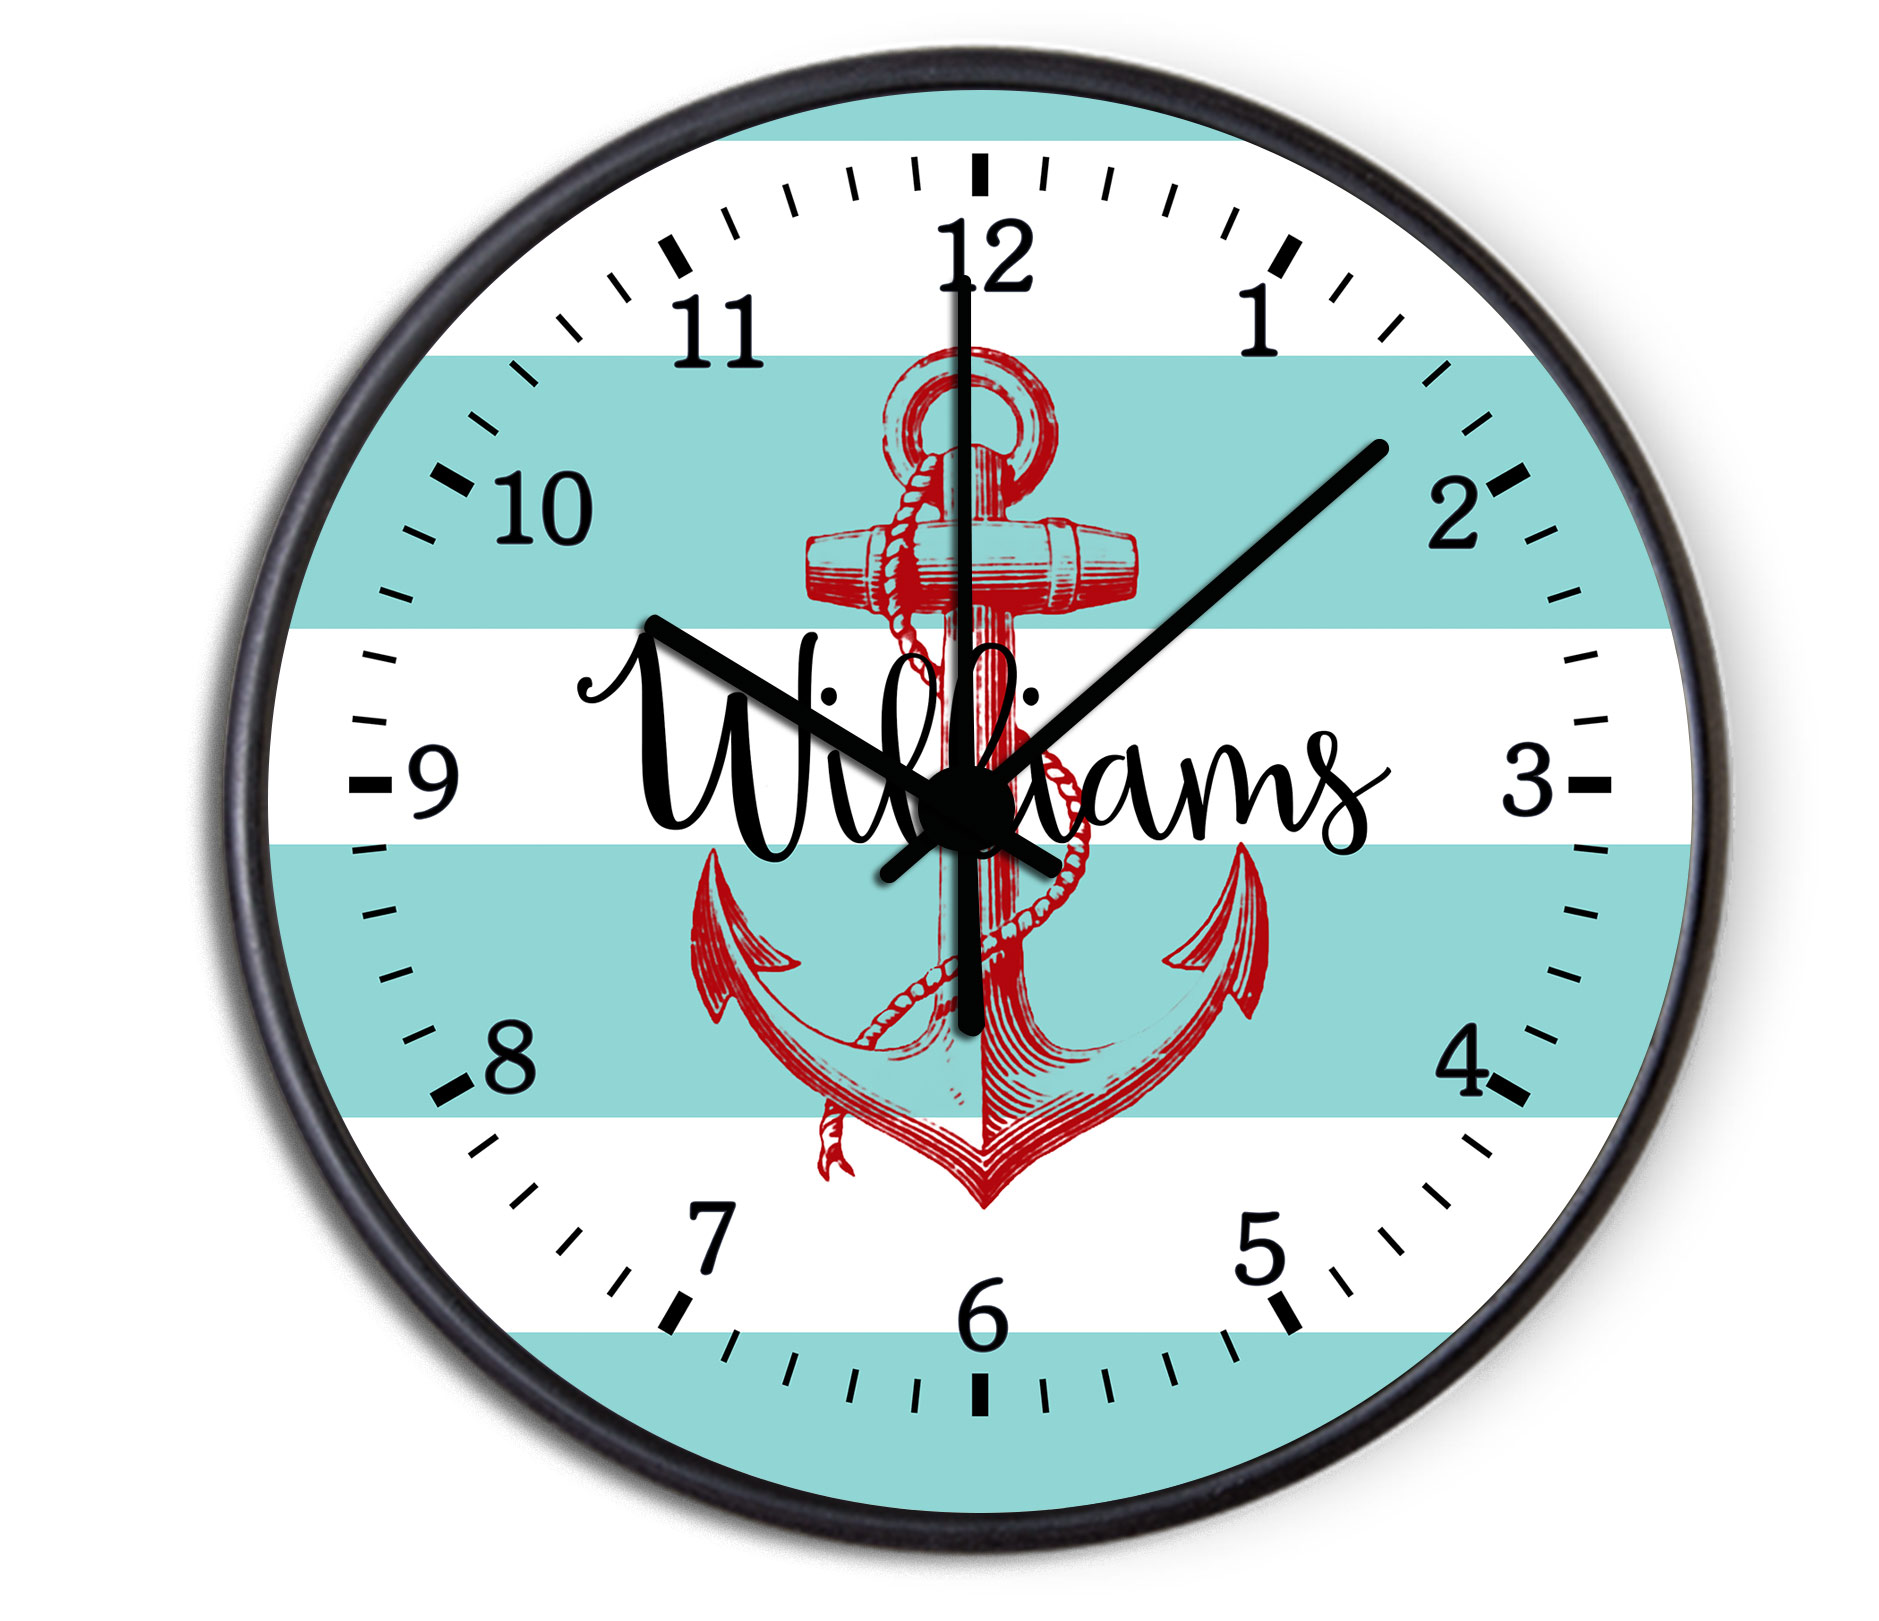 Custom nautical anchor personalized decorative kitchen wall clock nautical anchor personalized decorative wall clock boys or girls personalized clock amipublicfo Image collections